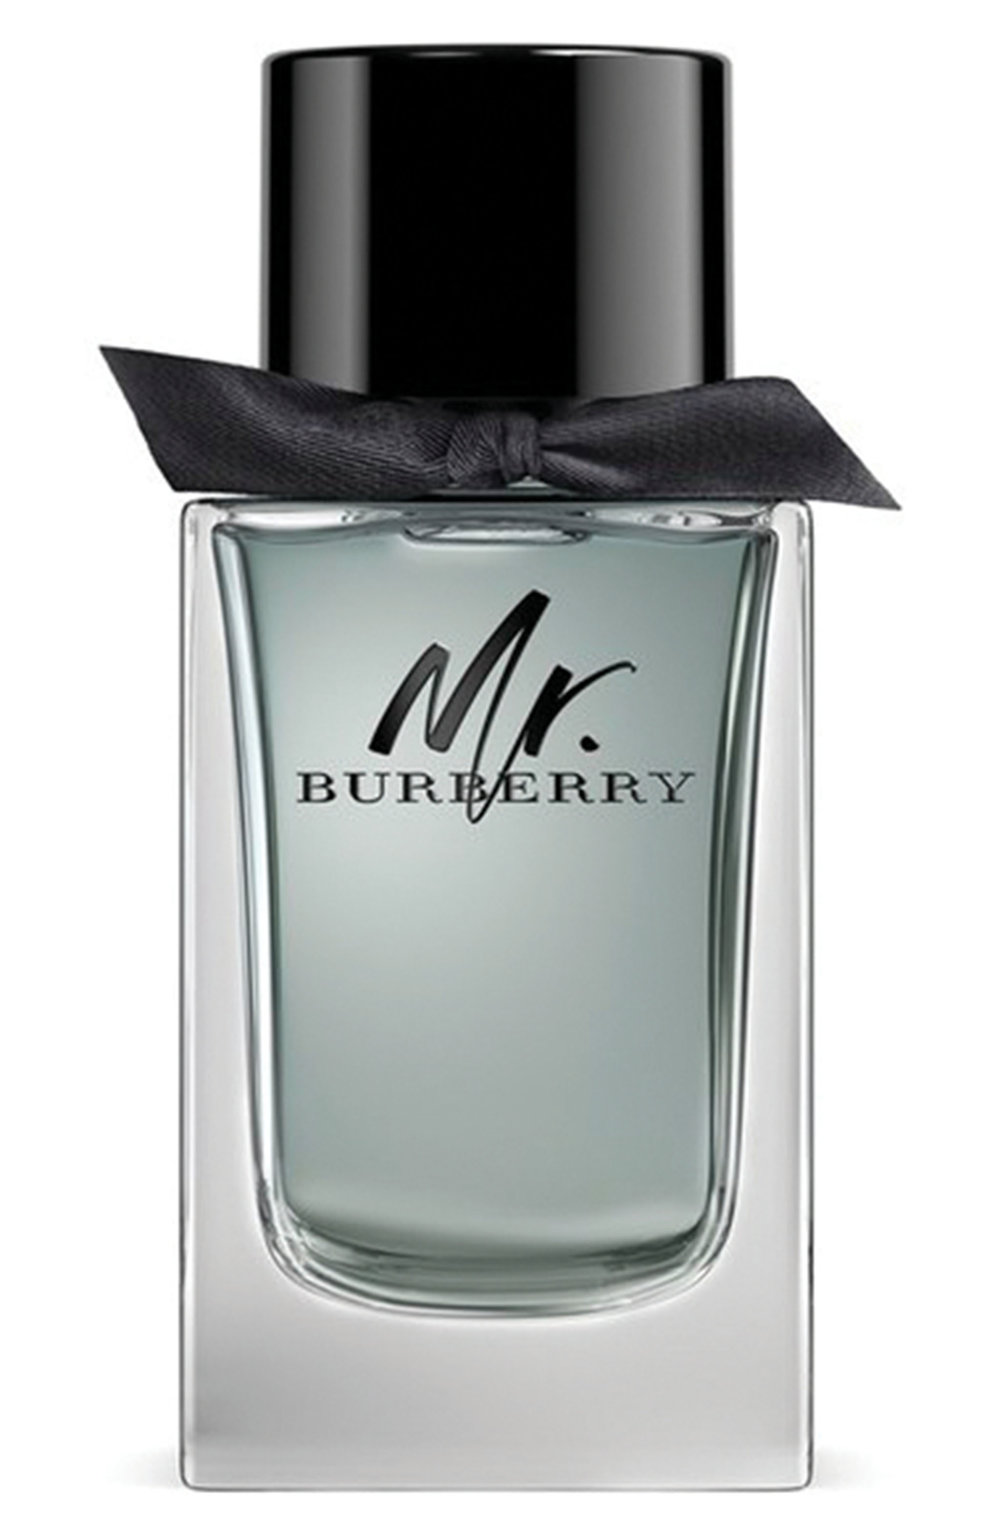 4.Mr. Burberry Eau de Toilette, 100ml by Burberry ‬$100,  burberry.ca